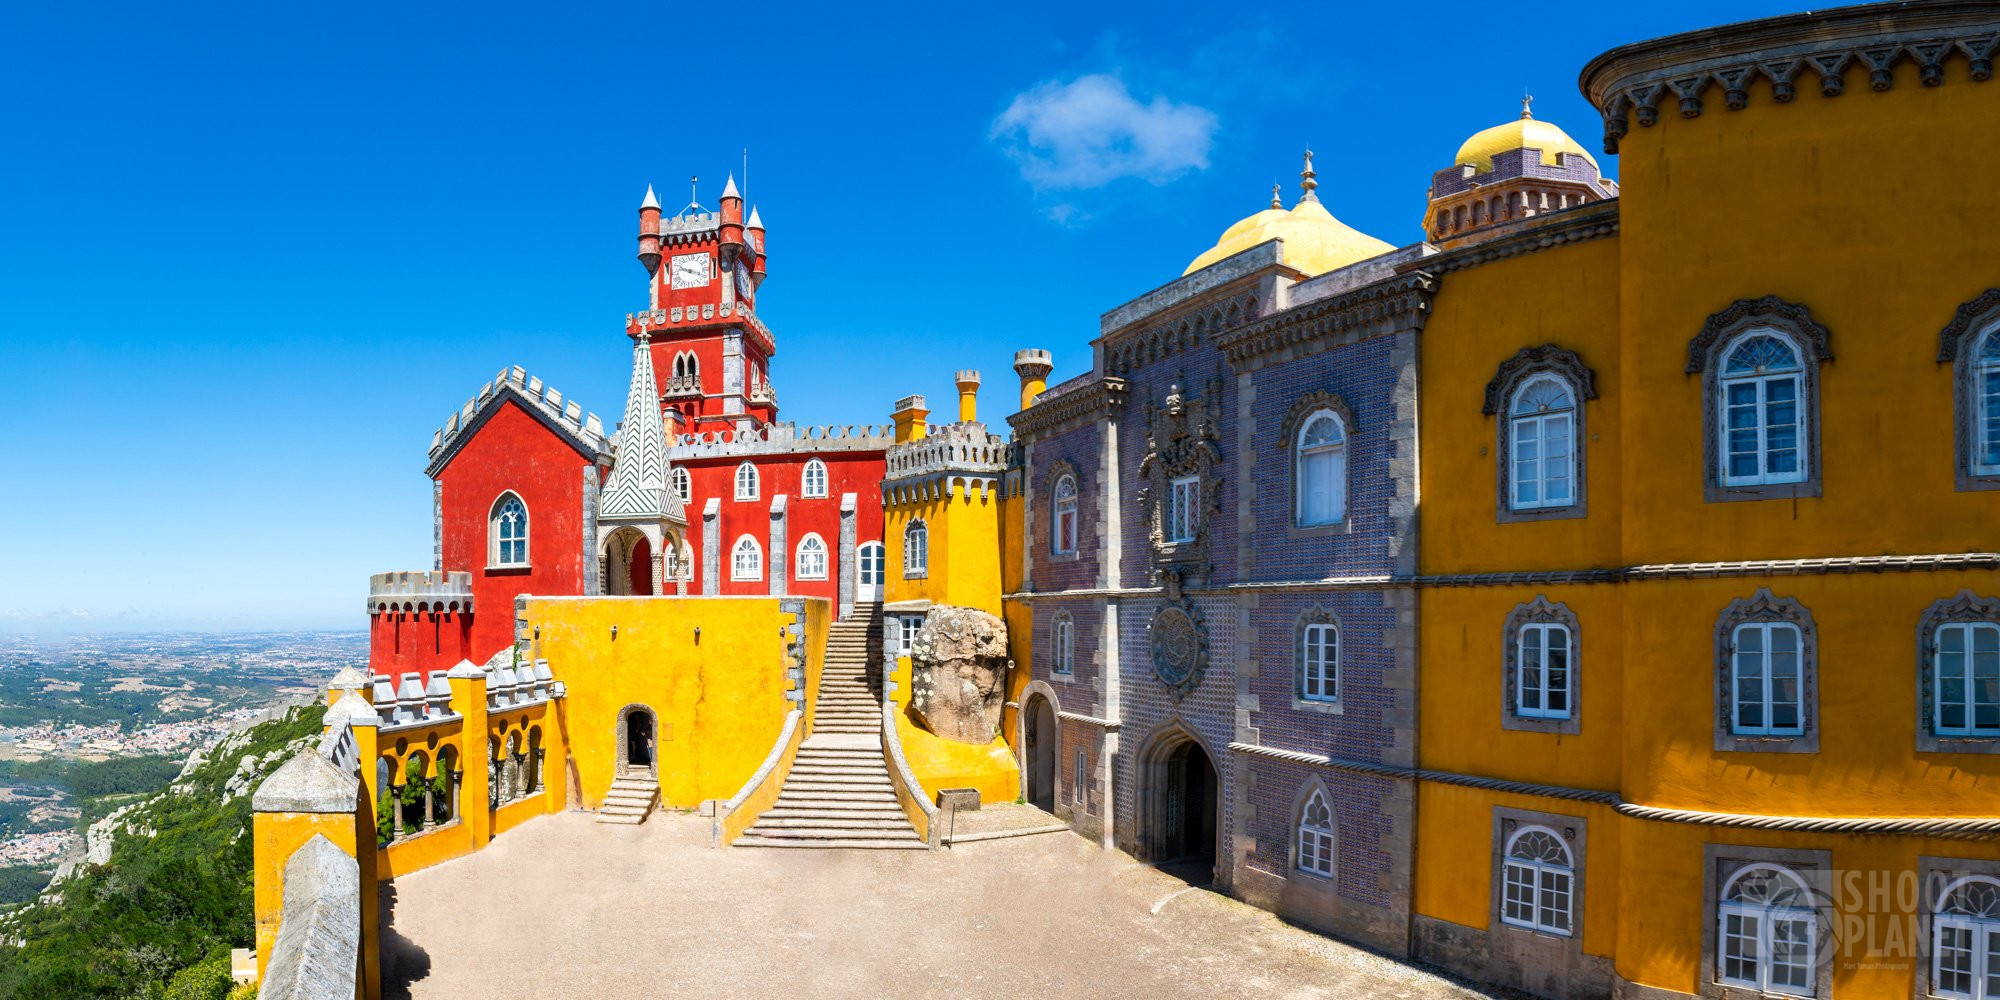 Beautiful Pena Palace view in Sintra, Portugal